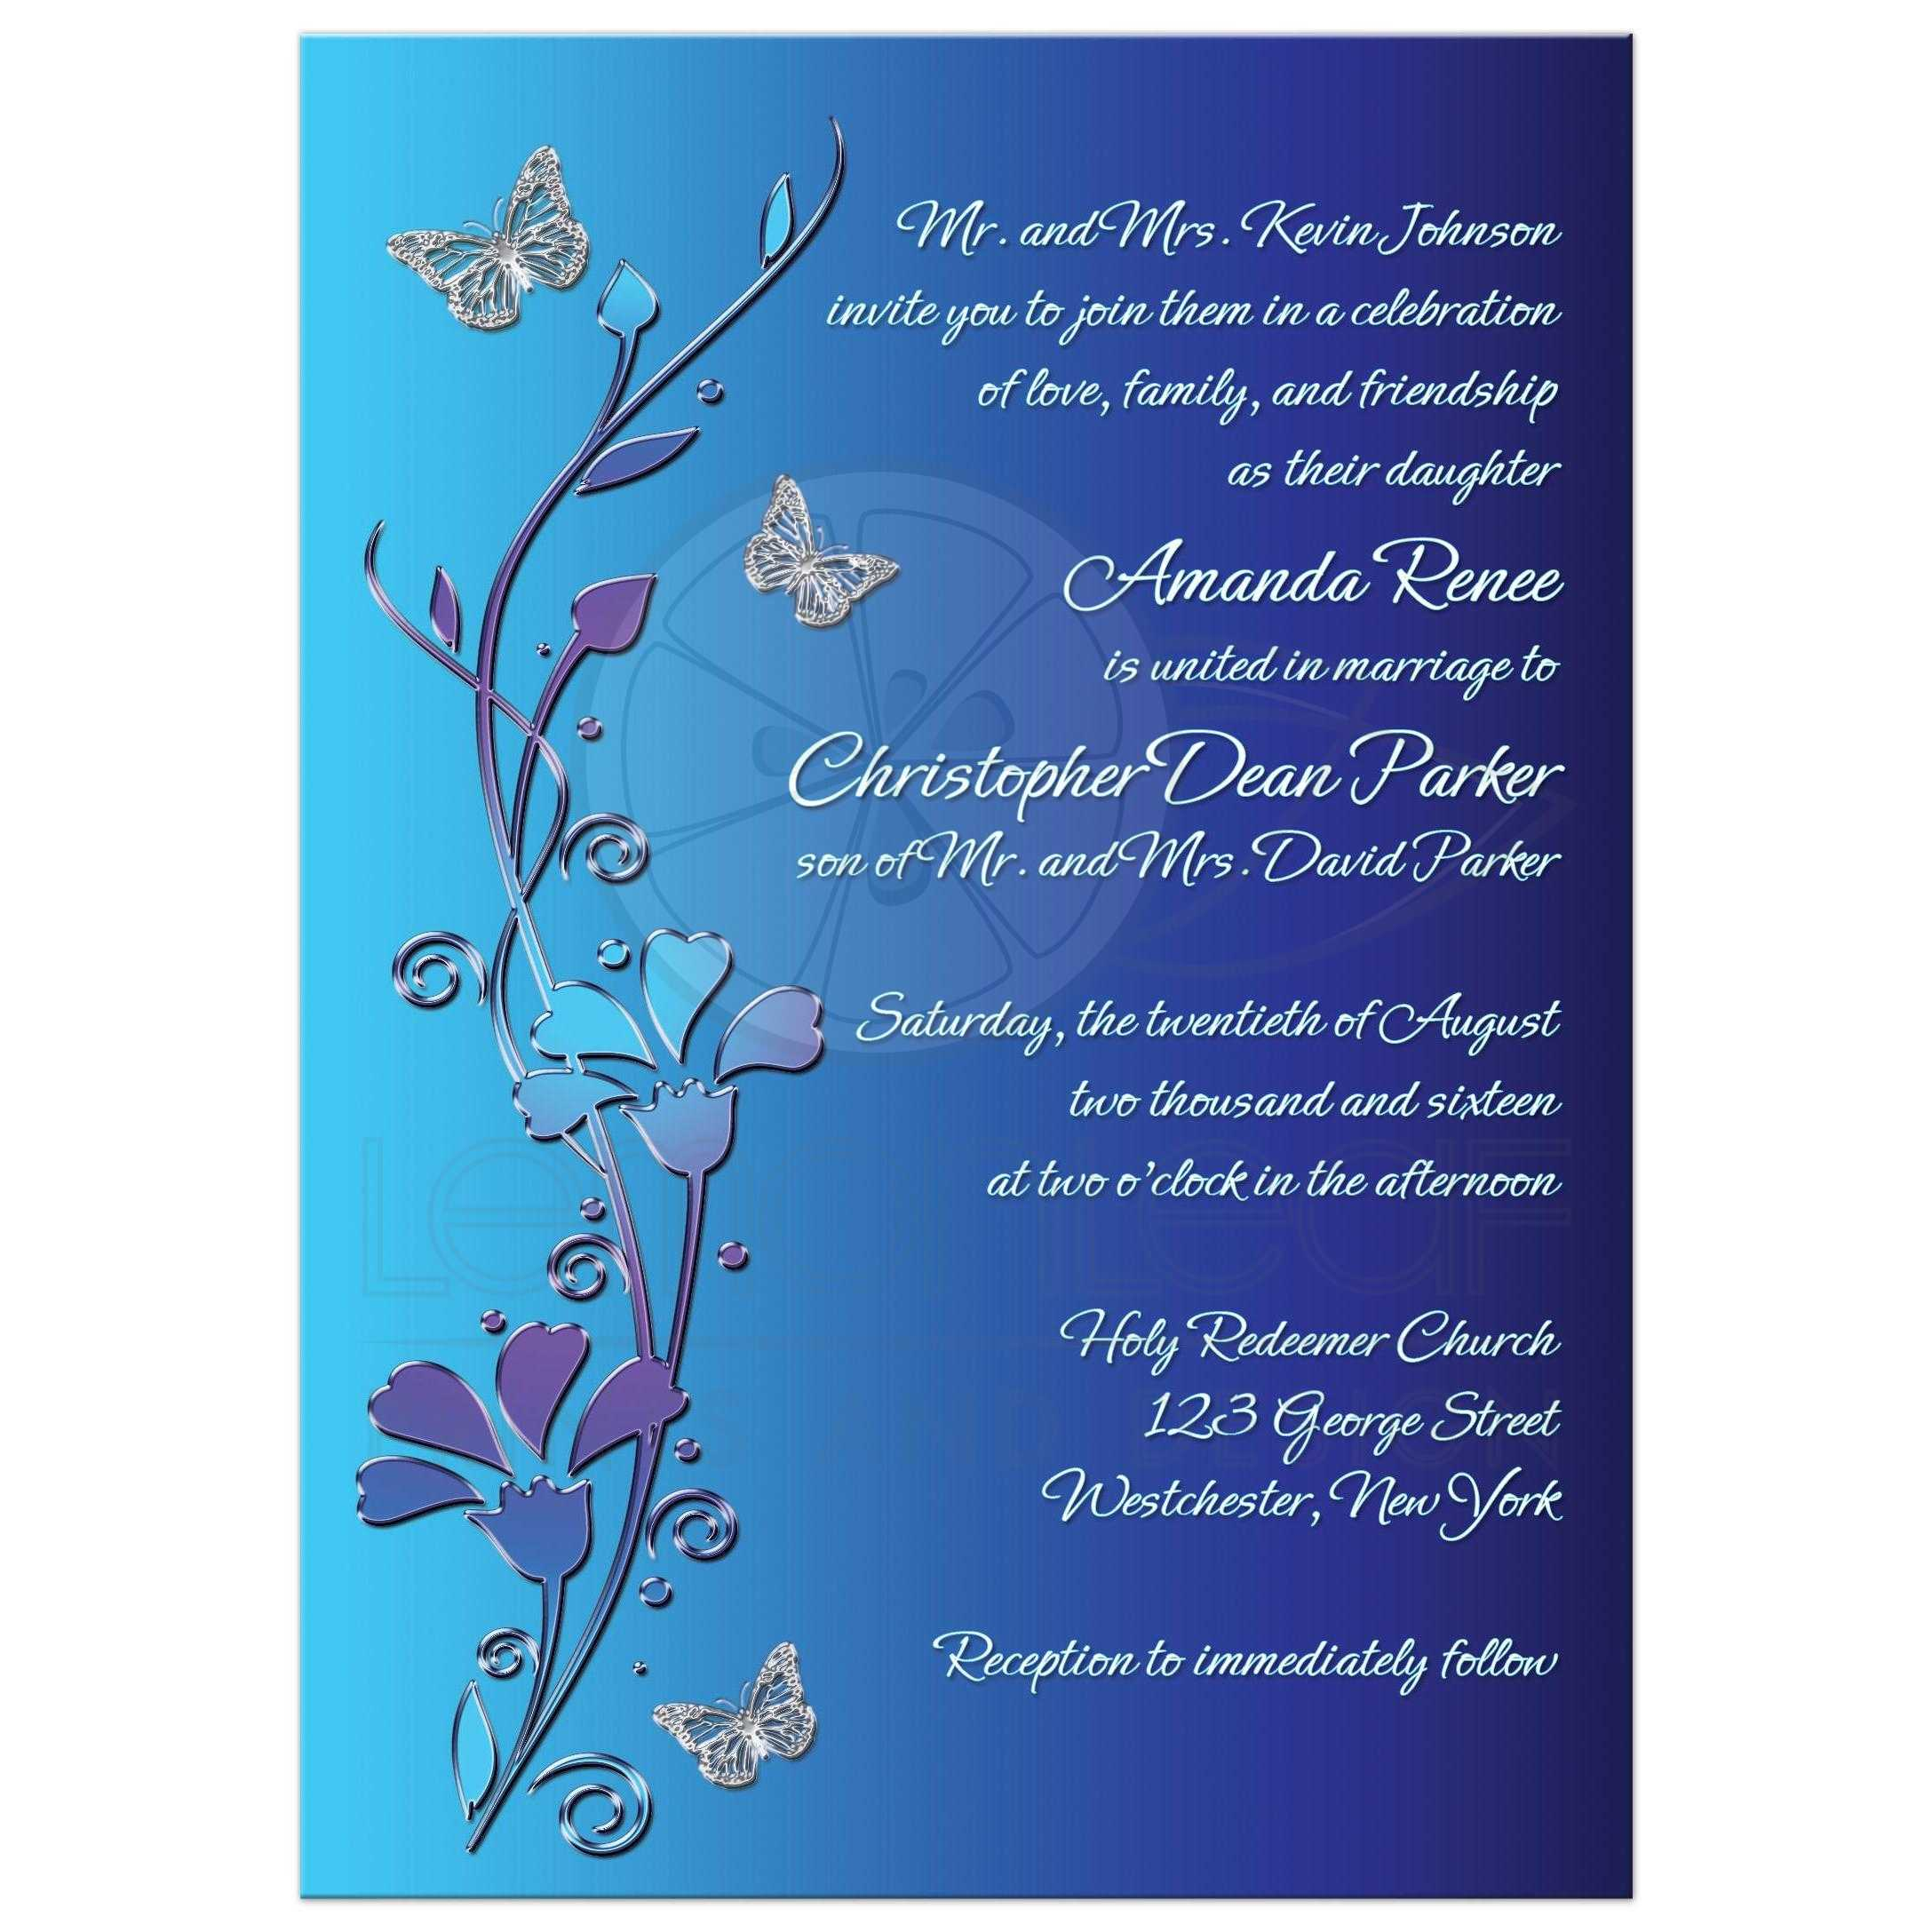 Invitation Wedding Invite With Silver Erflies On Royal Blue Background Teal And Purple Flowers